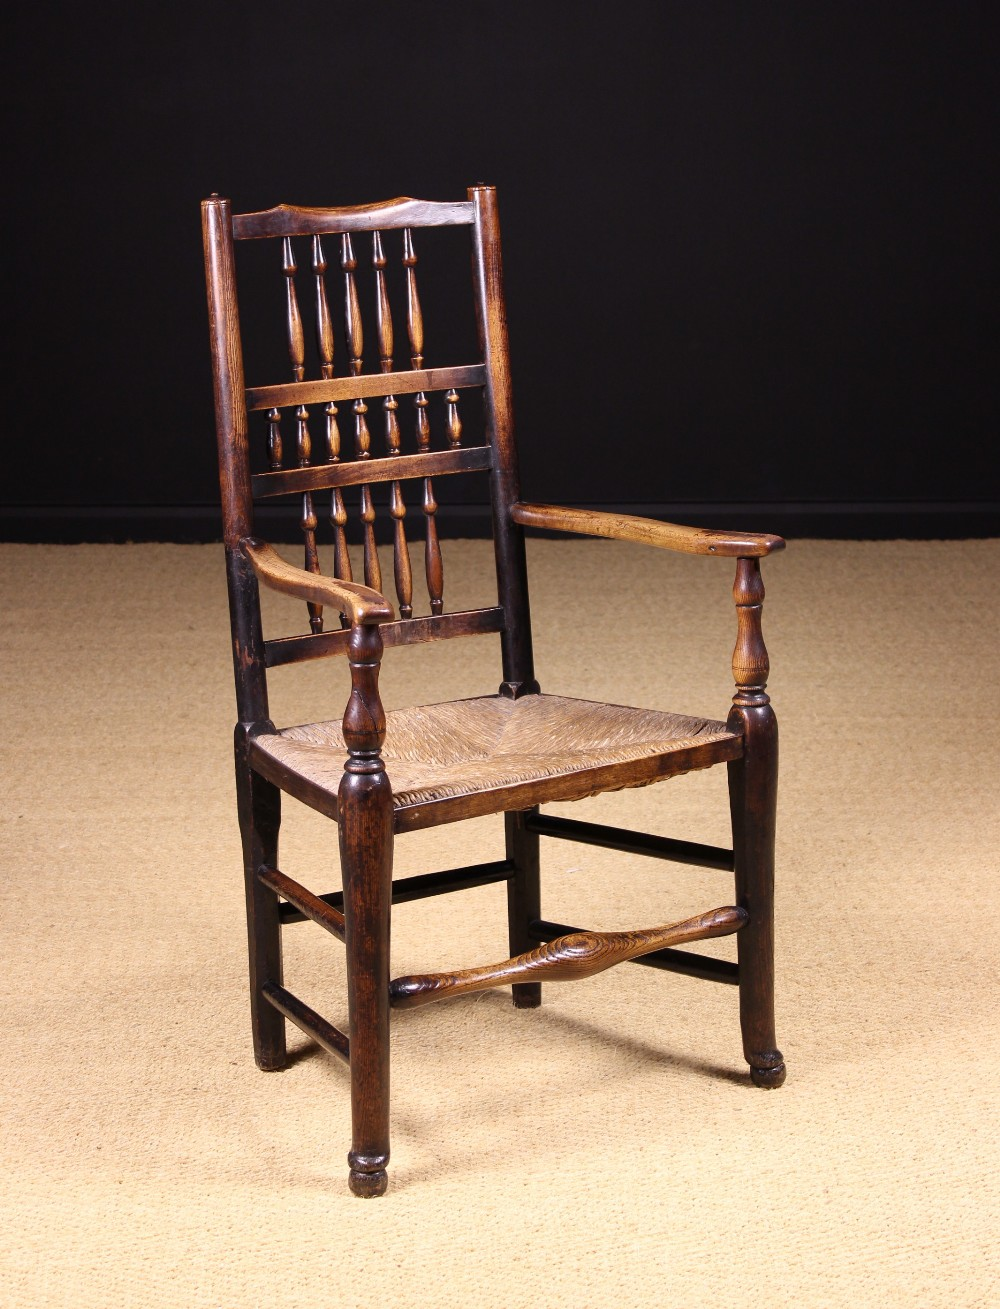 Lot 46 - An Ash Spindle-backed Rush-seat Armchair attributed to North West England, Circa 1800.